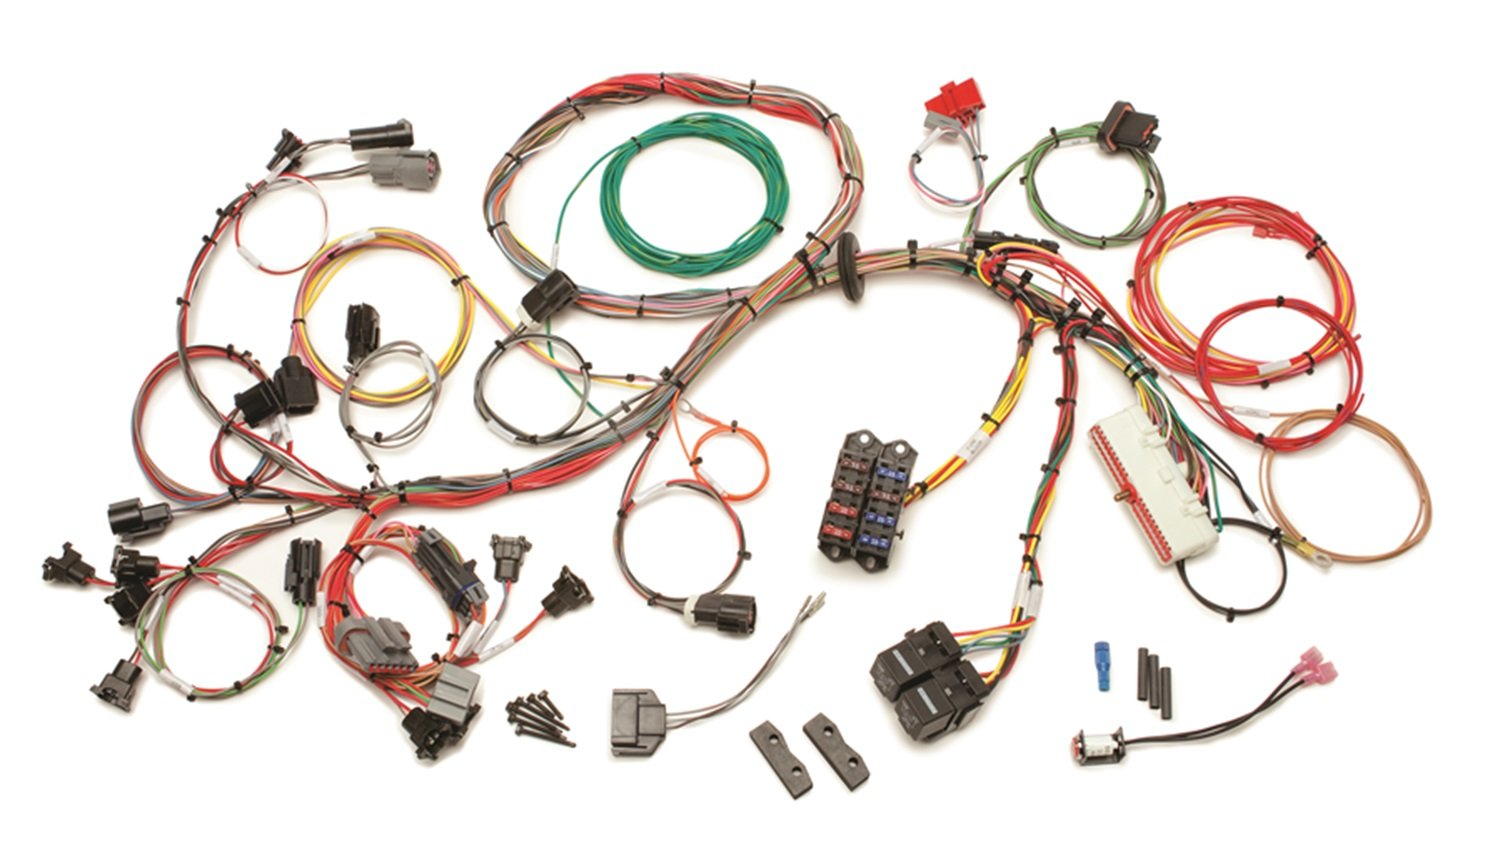 71UX1IBfleL._SL1500_ amazon com painless 60510 5 0l wiring harness automotive electrical wiring harness at webbmarketing.co